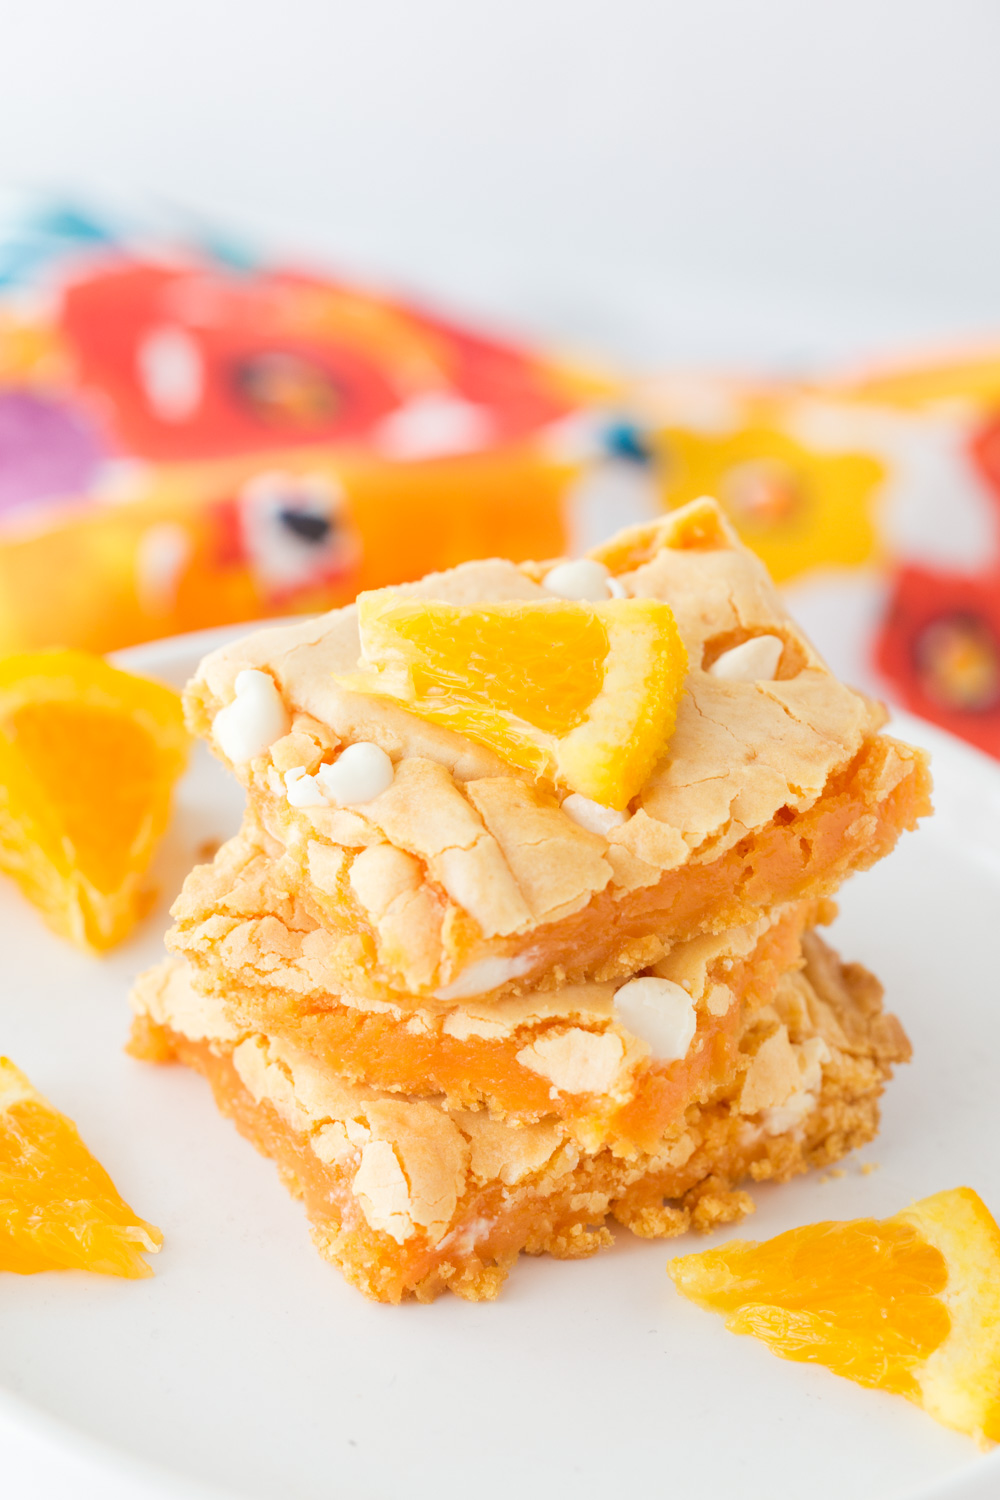 Orange Creamsicle Cake Mix Bars are delicious and bursting with an orange flavor. The white chocolate chips adds the perfect bite of creaminess!